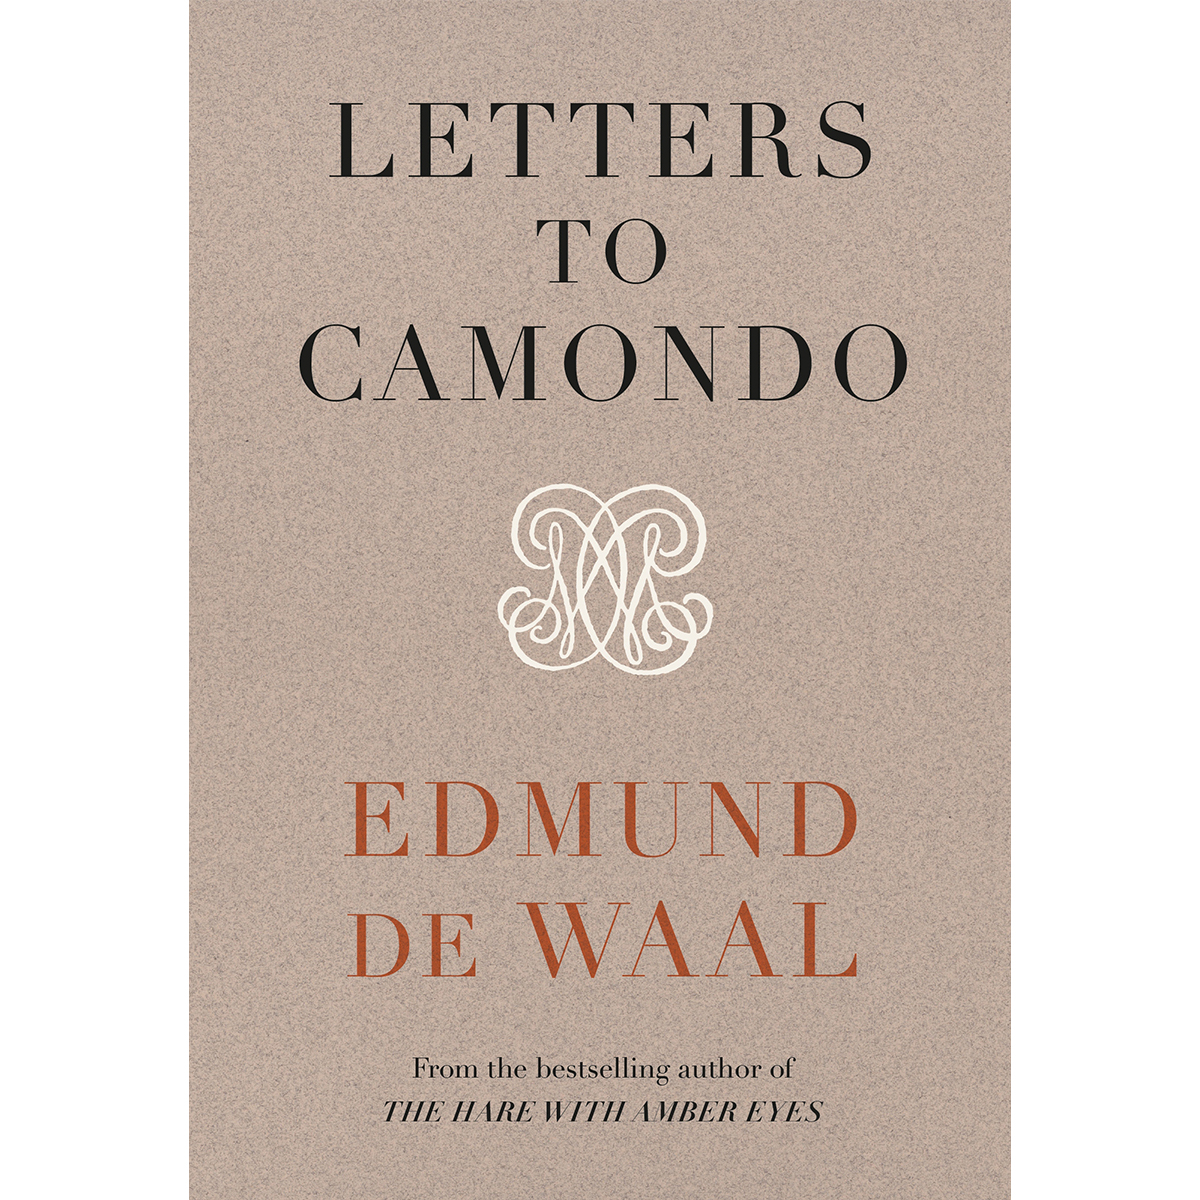 Letters to Camondo (signed)